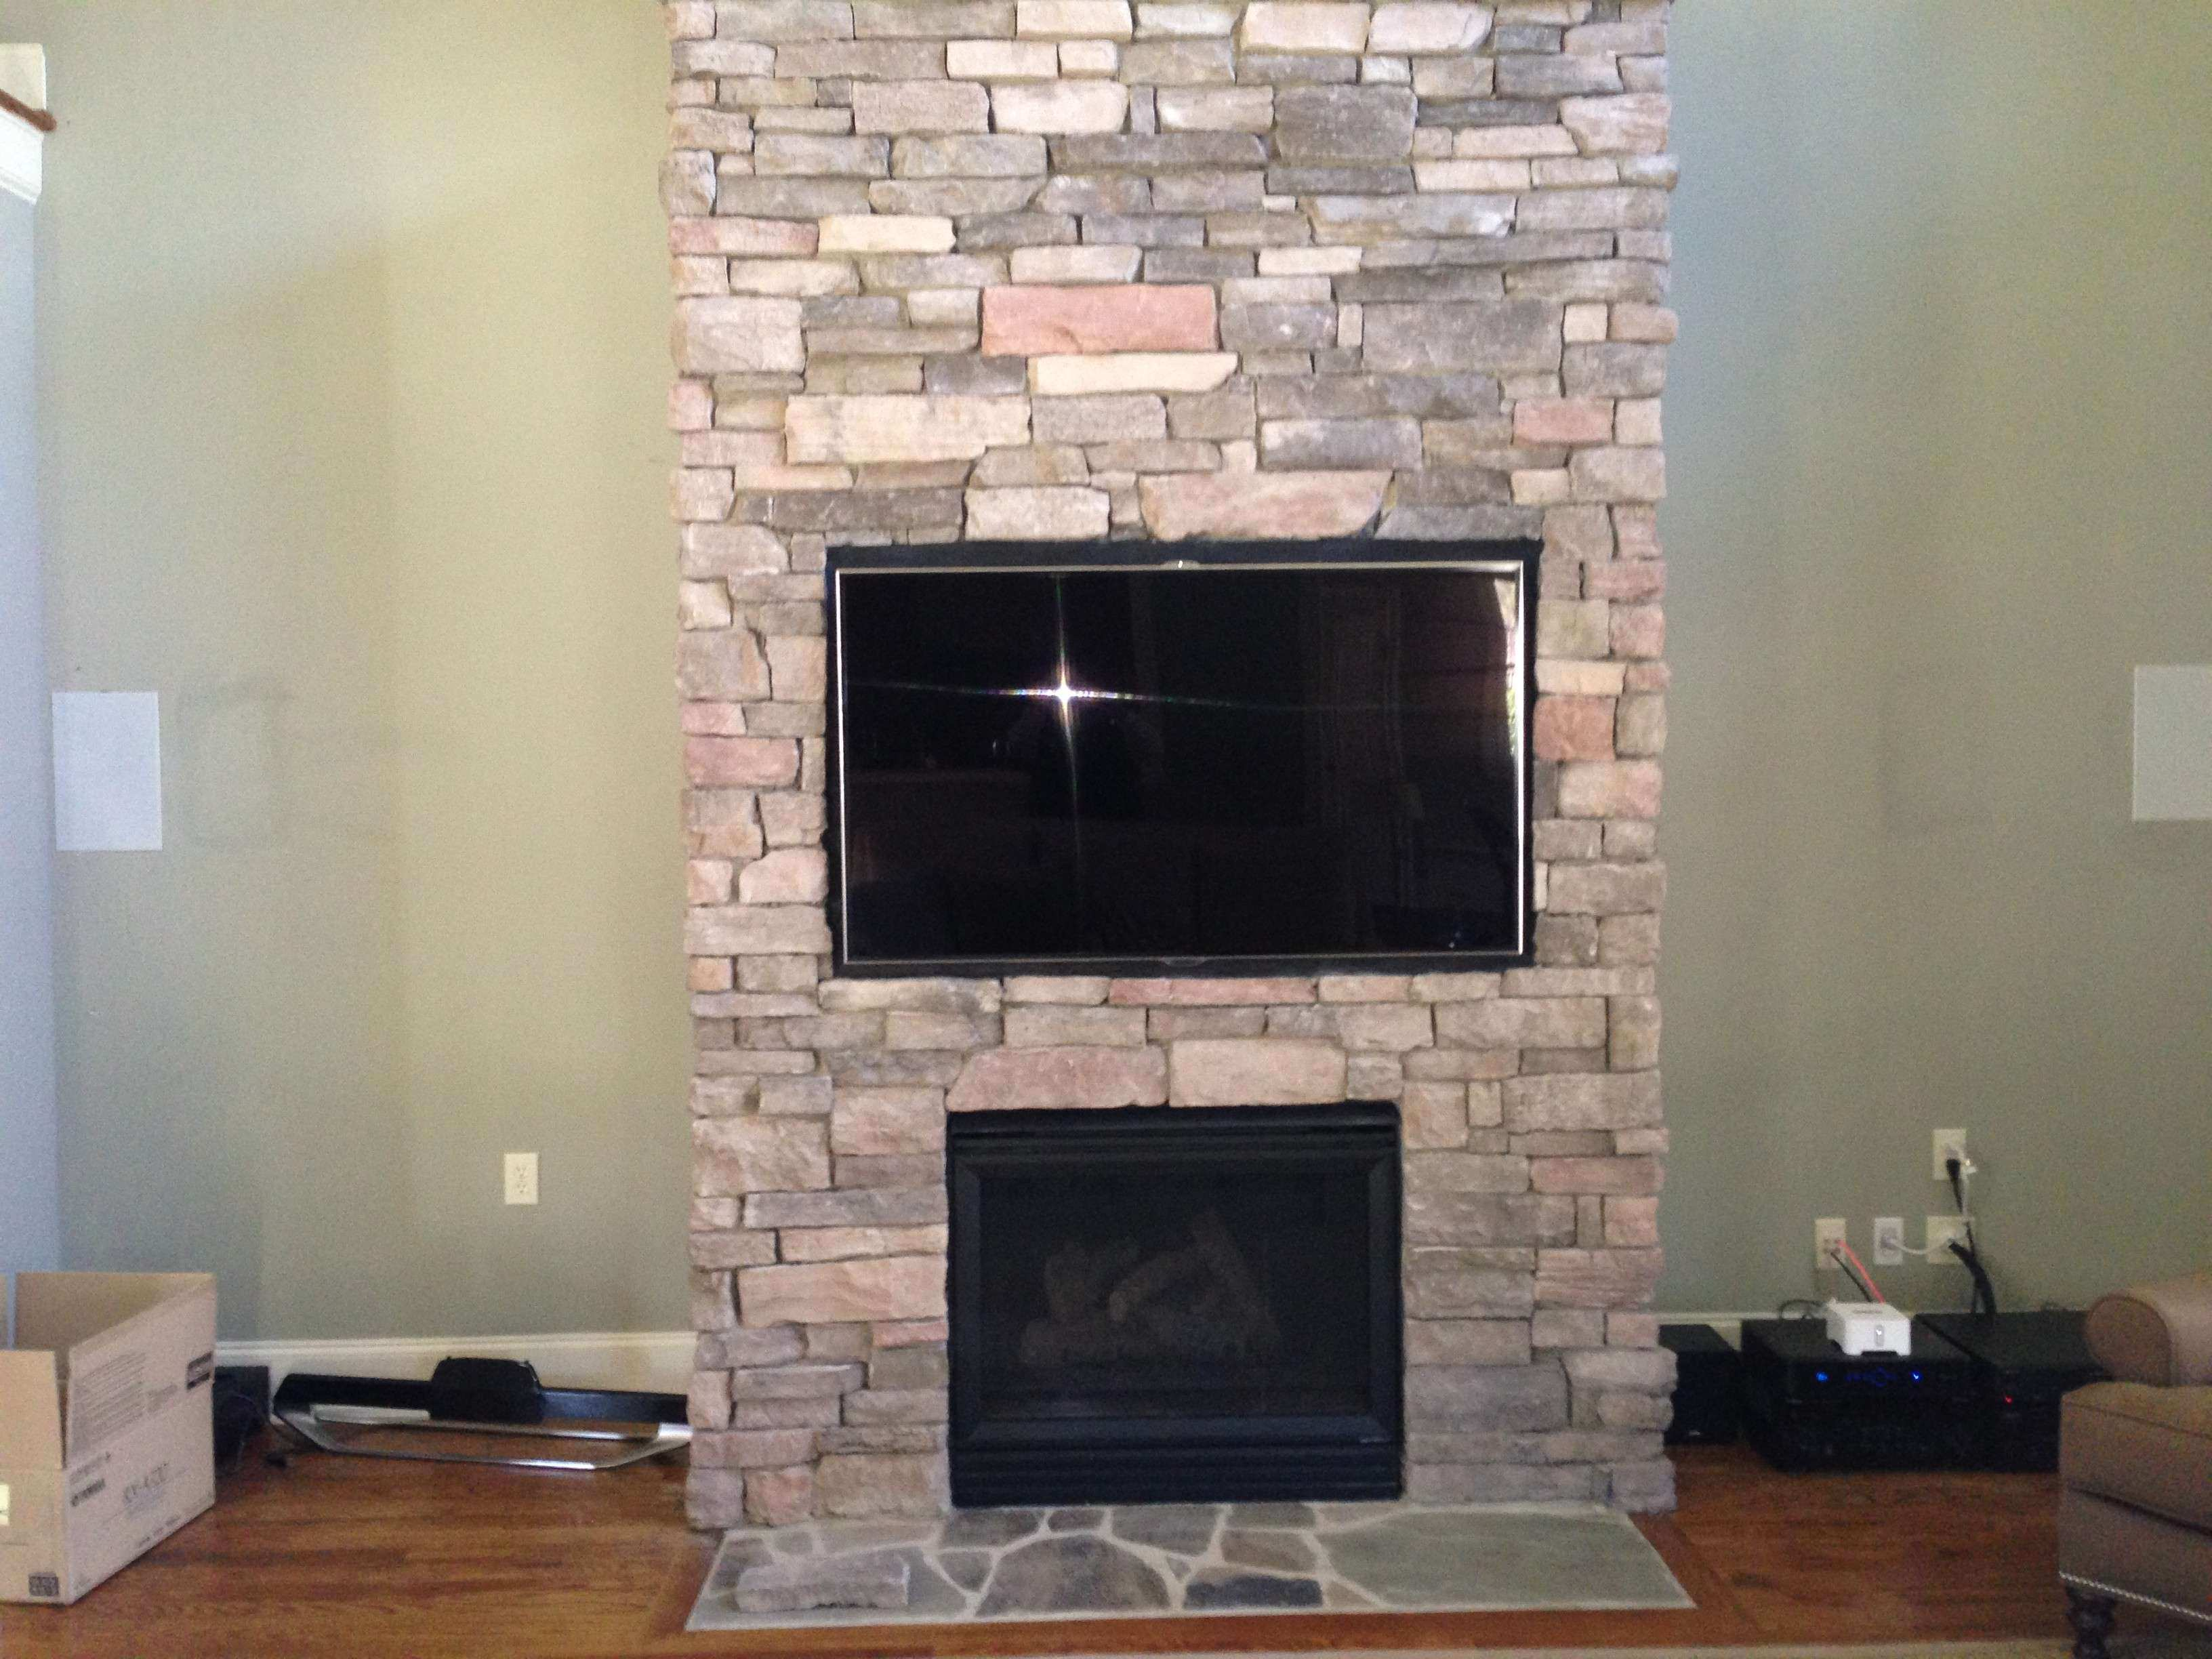 Flat Screen Installation on a Brick Wall or Fireplace Neuwave Systems